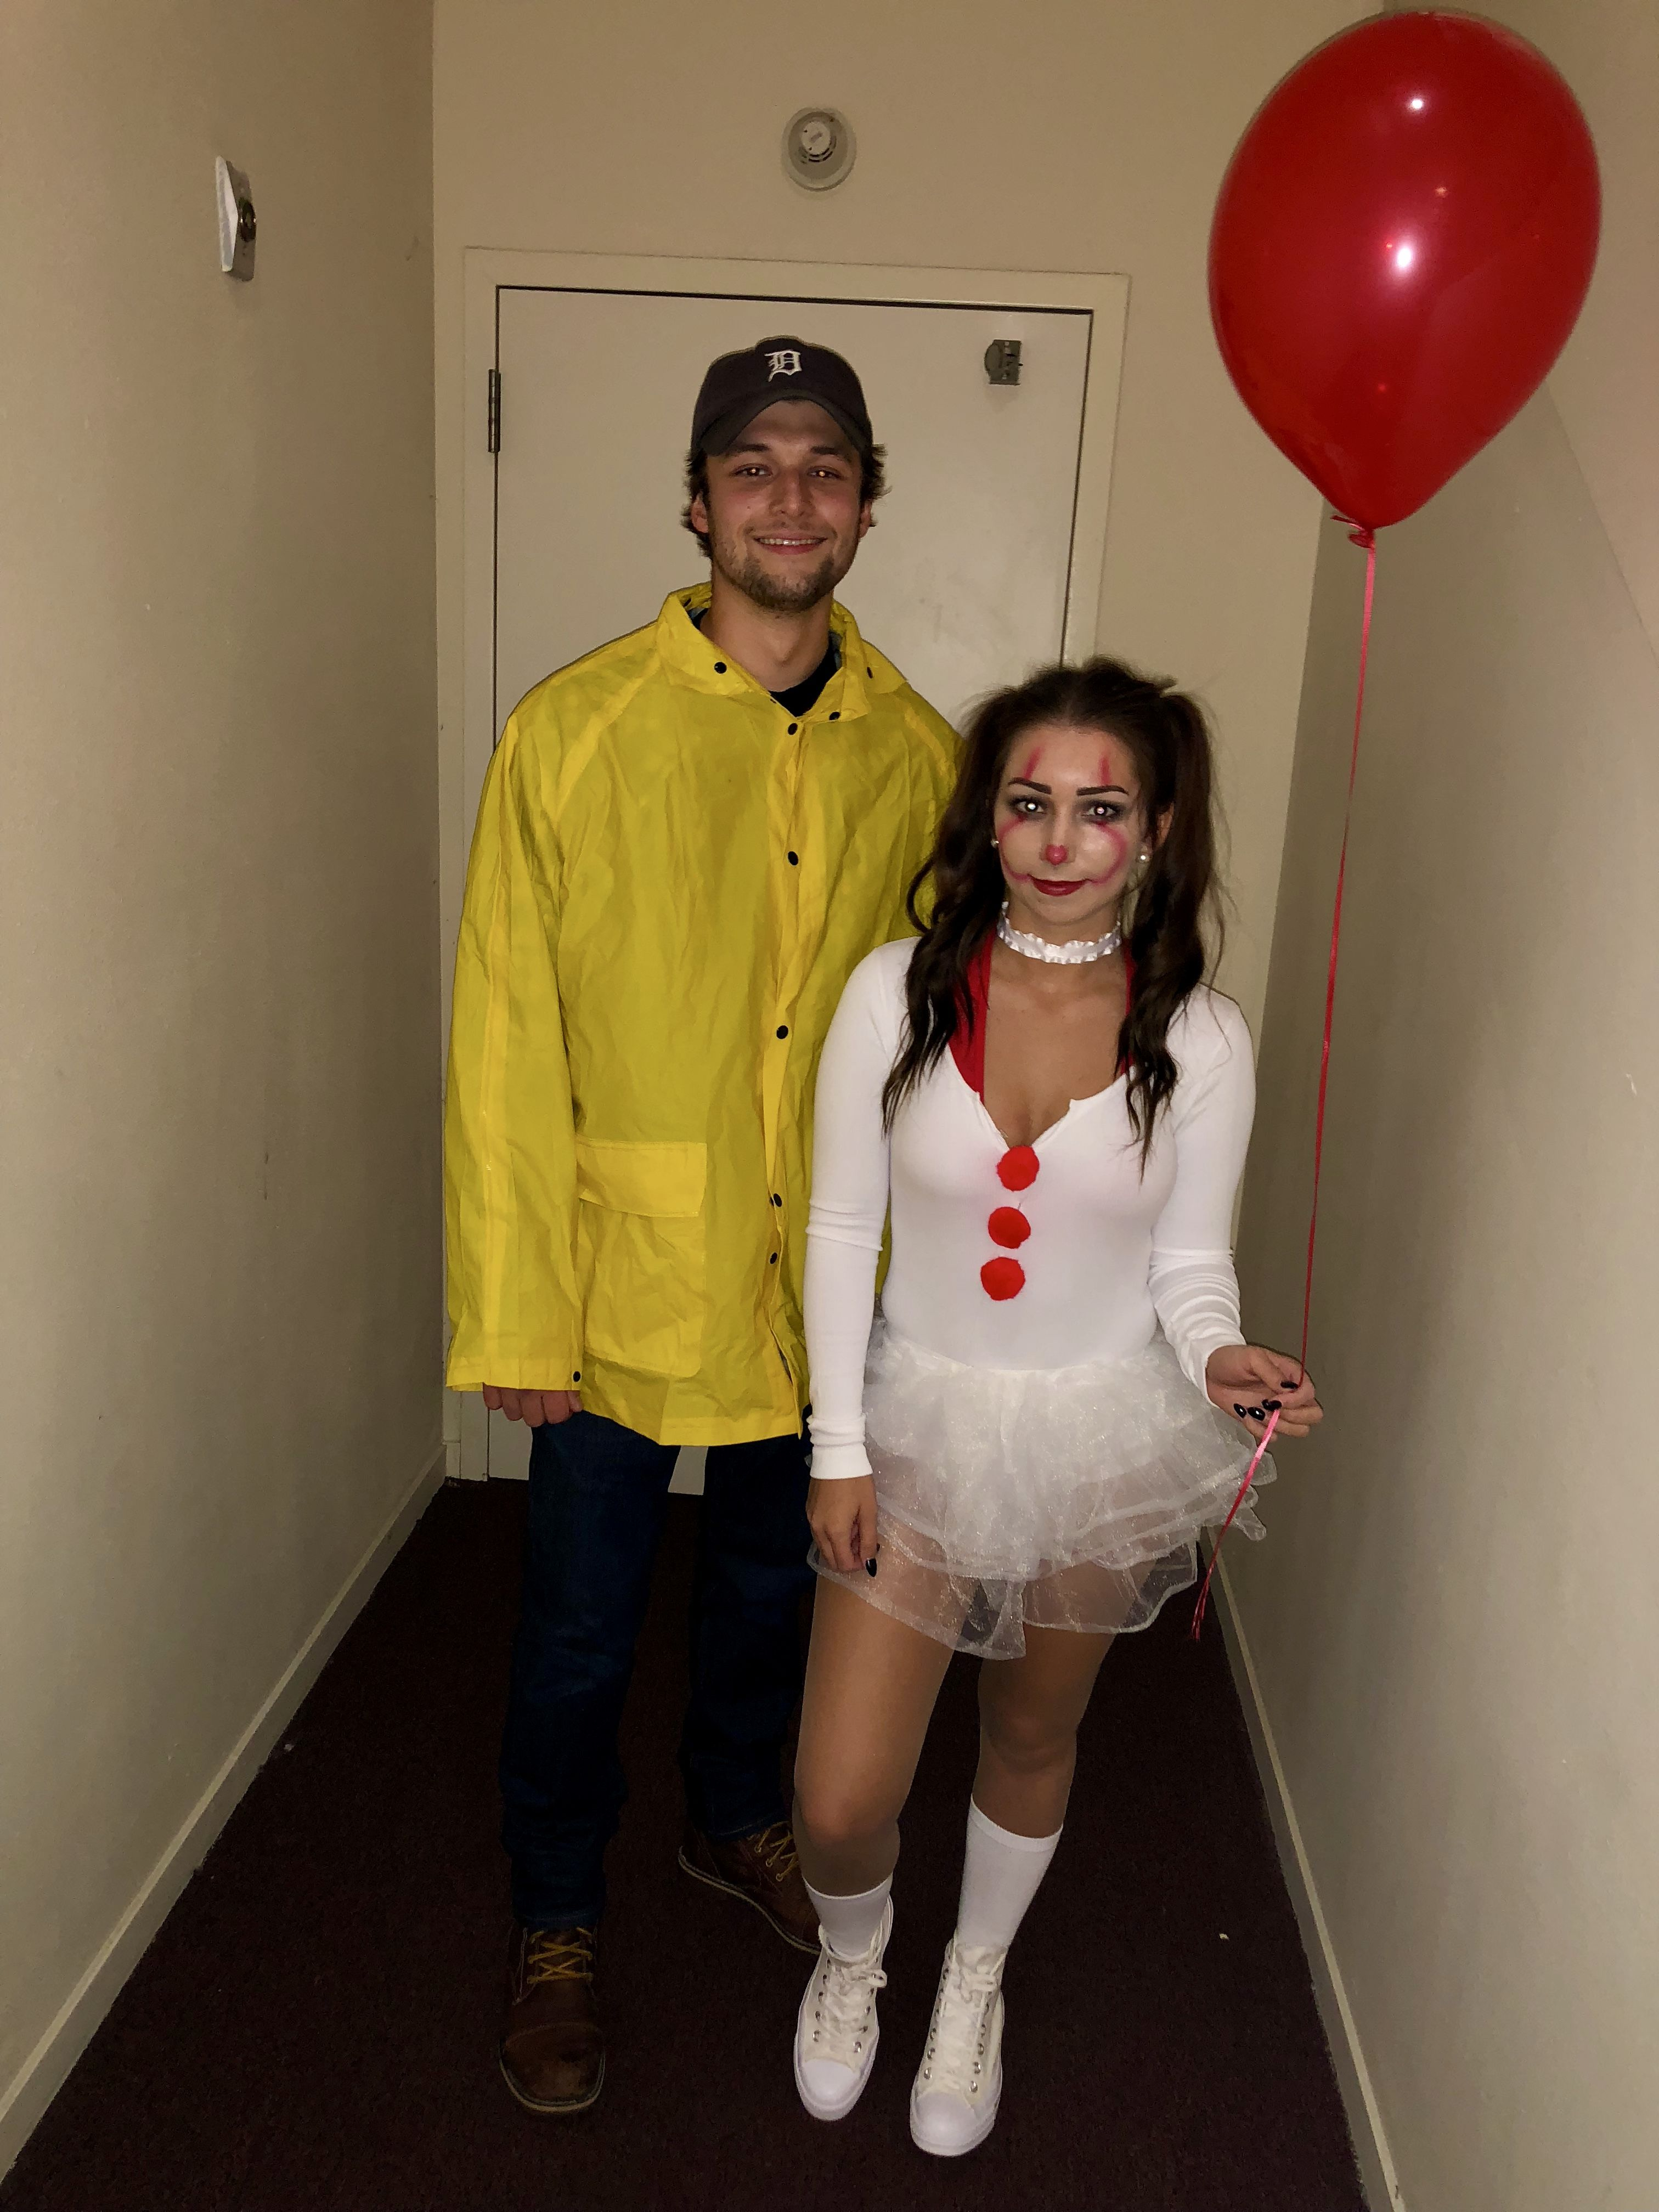 Who knew dressing as a Pennywise would be so fun!